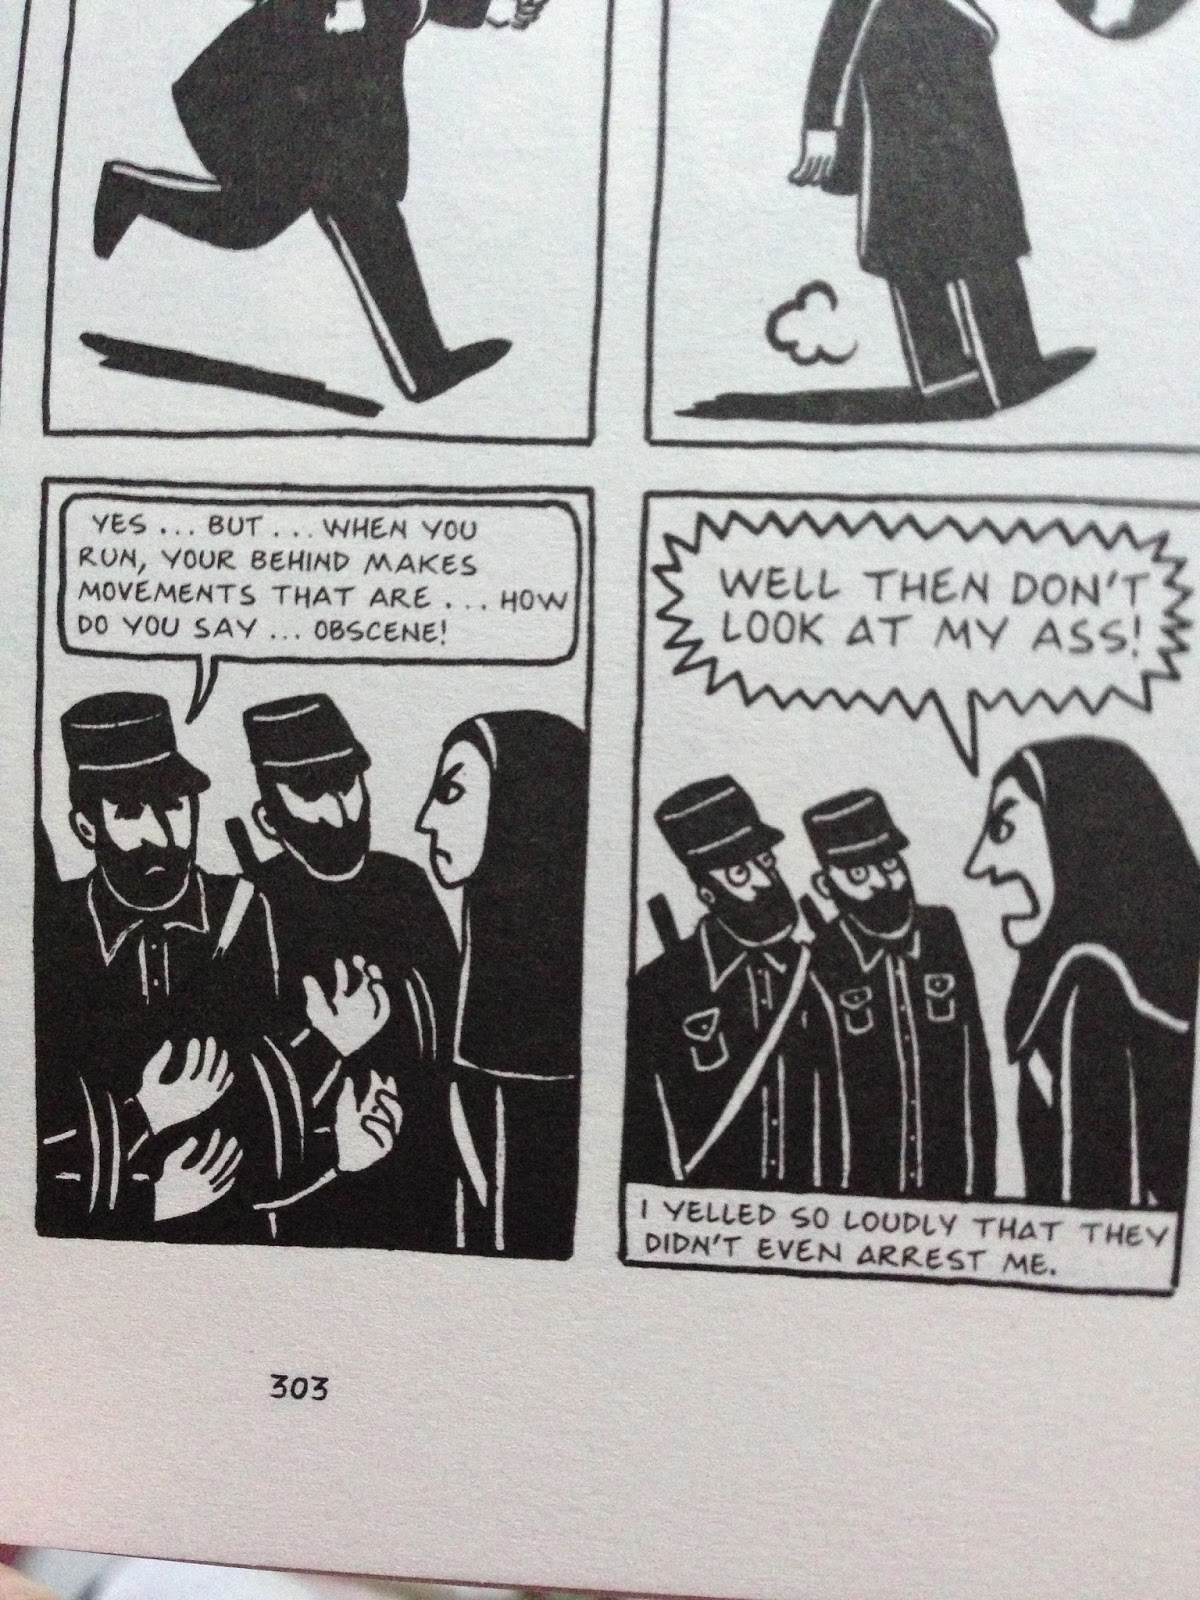 devouring texts devouring books persepolis by marjane satrapi and hey if you already have can we talk about feminism and religion and things in the comments please or actually can we just do that